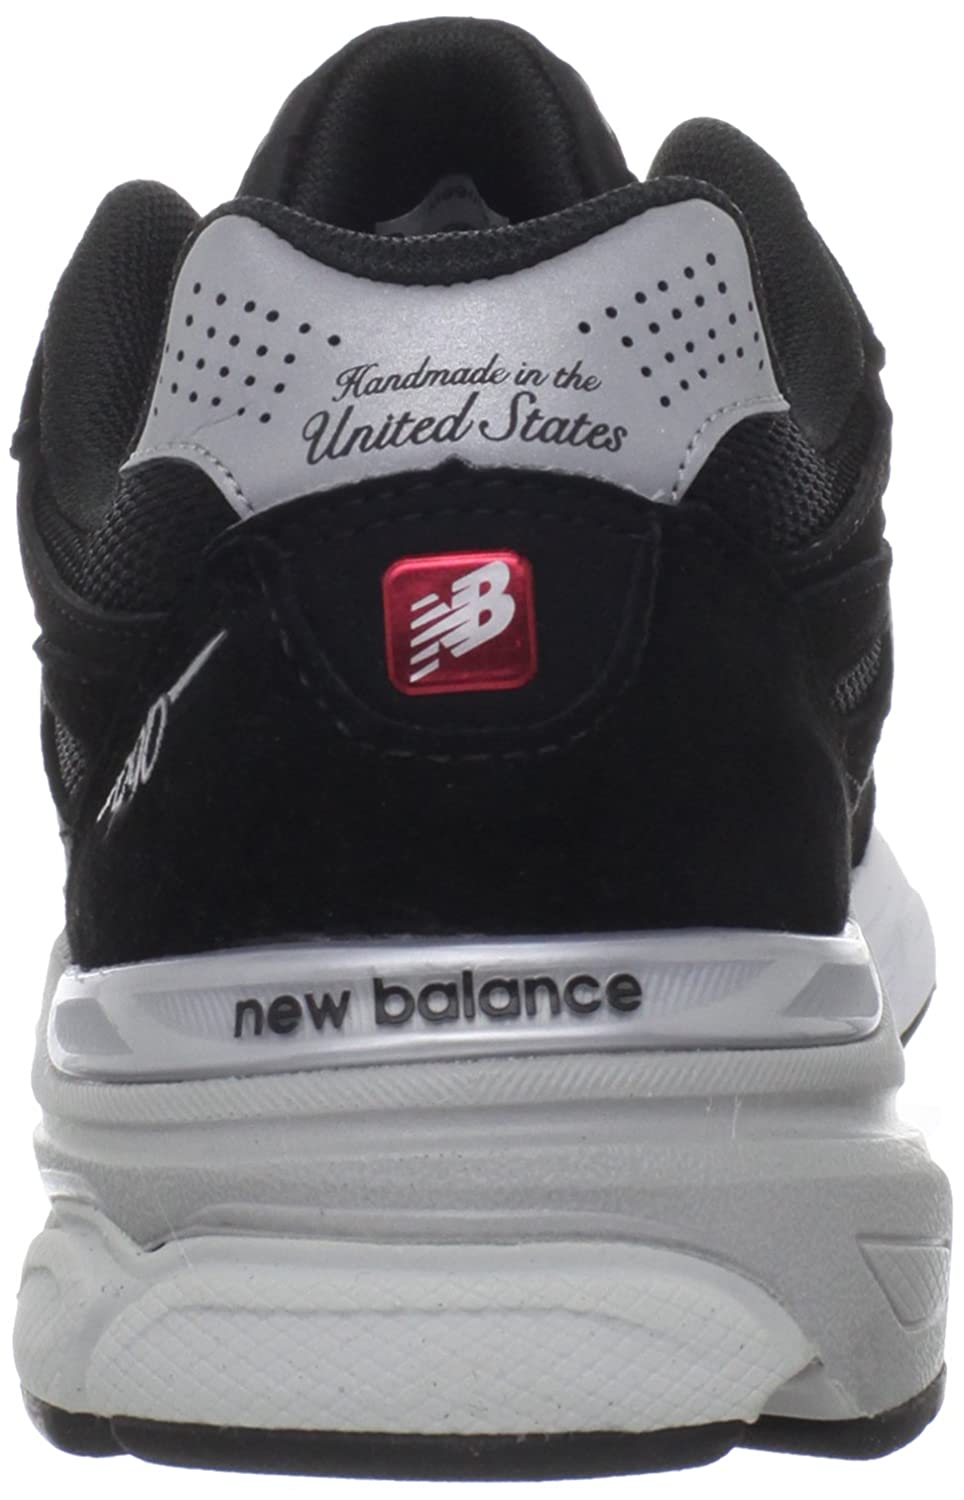 joes new balance outlet promo code 2017 new balance running shoes amazon uk